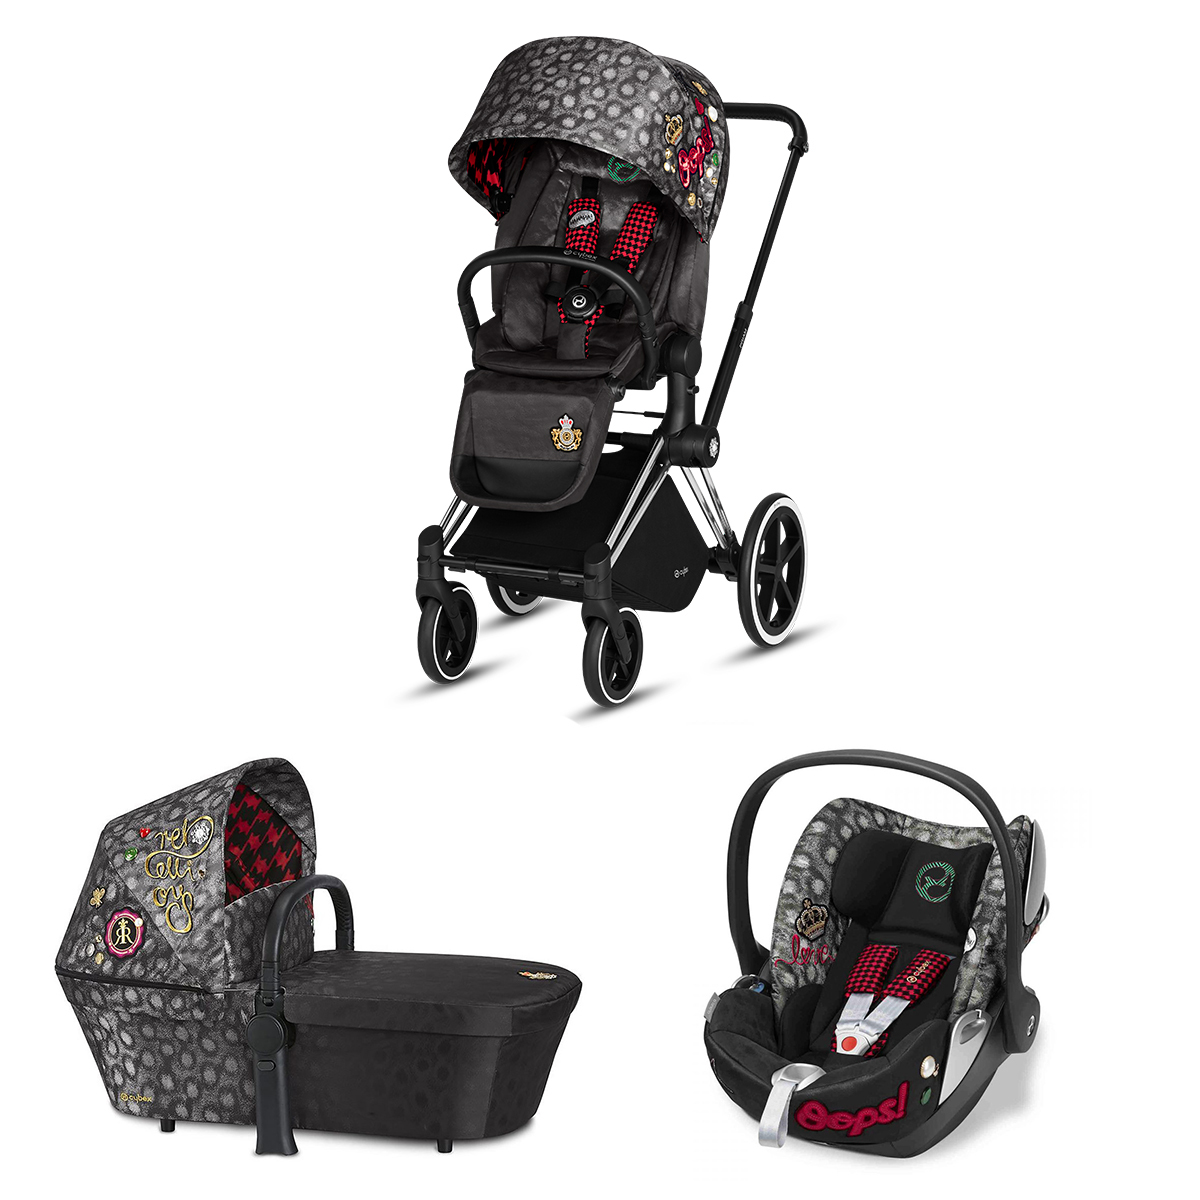 Poussette combinée Poussette Trio Priam Chrome Nacelle Luxe et Siège Auto Cloud Q Fashion Collection - Rebellious Multicolor Poussette Trio Priam Chrome + Nacelle de Luxe Priam + Siège Auto Cloud Q Plus Isofix Fashion Collection - Rebellious Multicolor